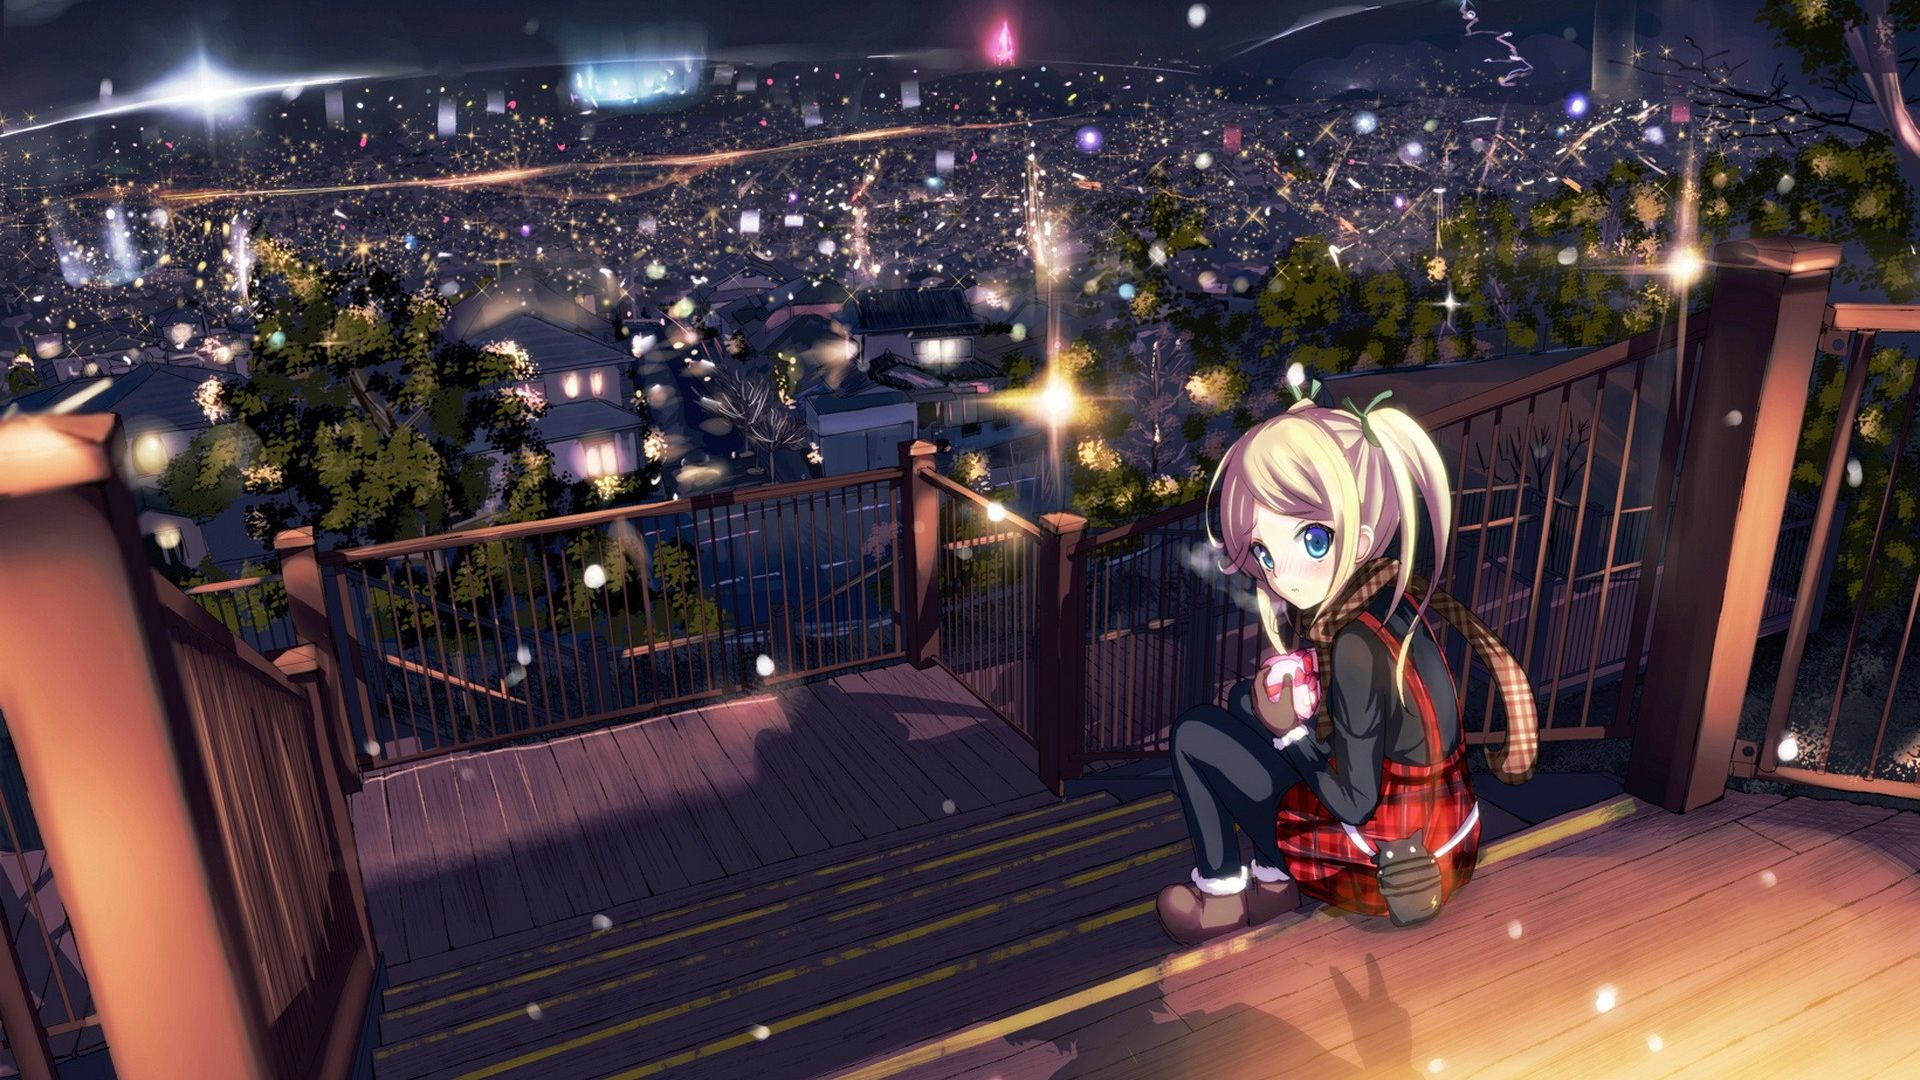 Desktop Wallpaper Stylish Girl 24 Anime Backgrounds Wallpapers Images Pictures